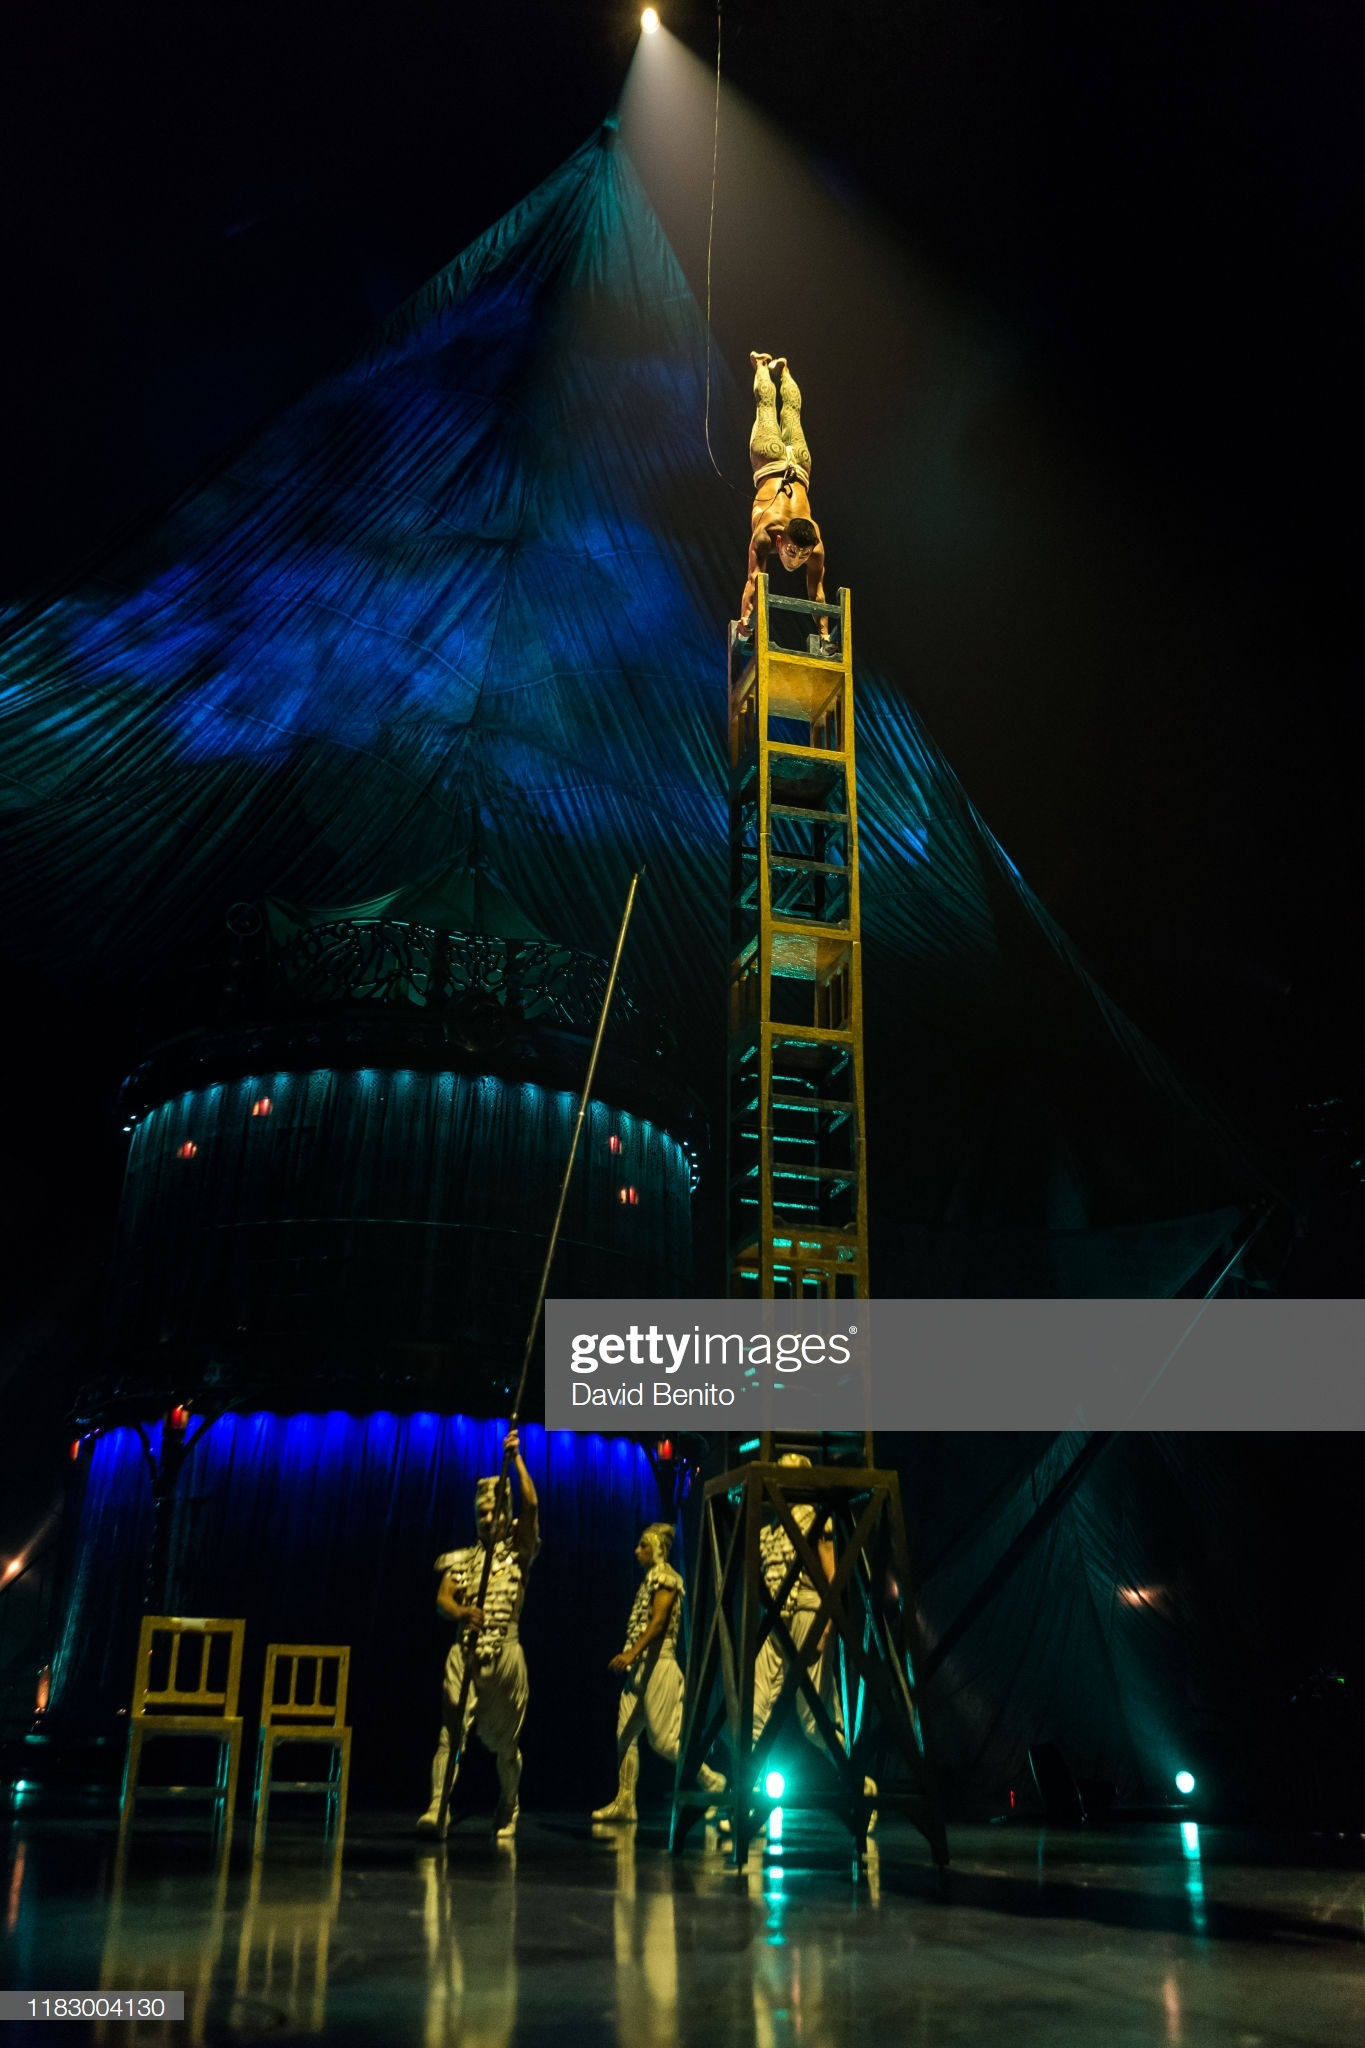 gettyimages-1183004130-2048x2048